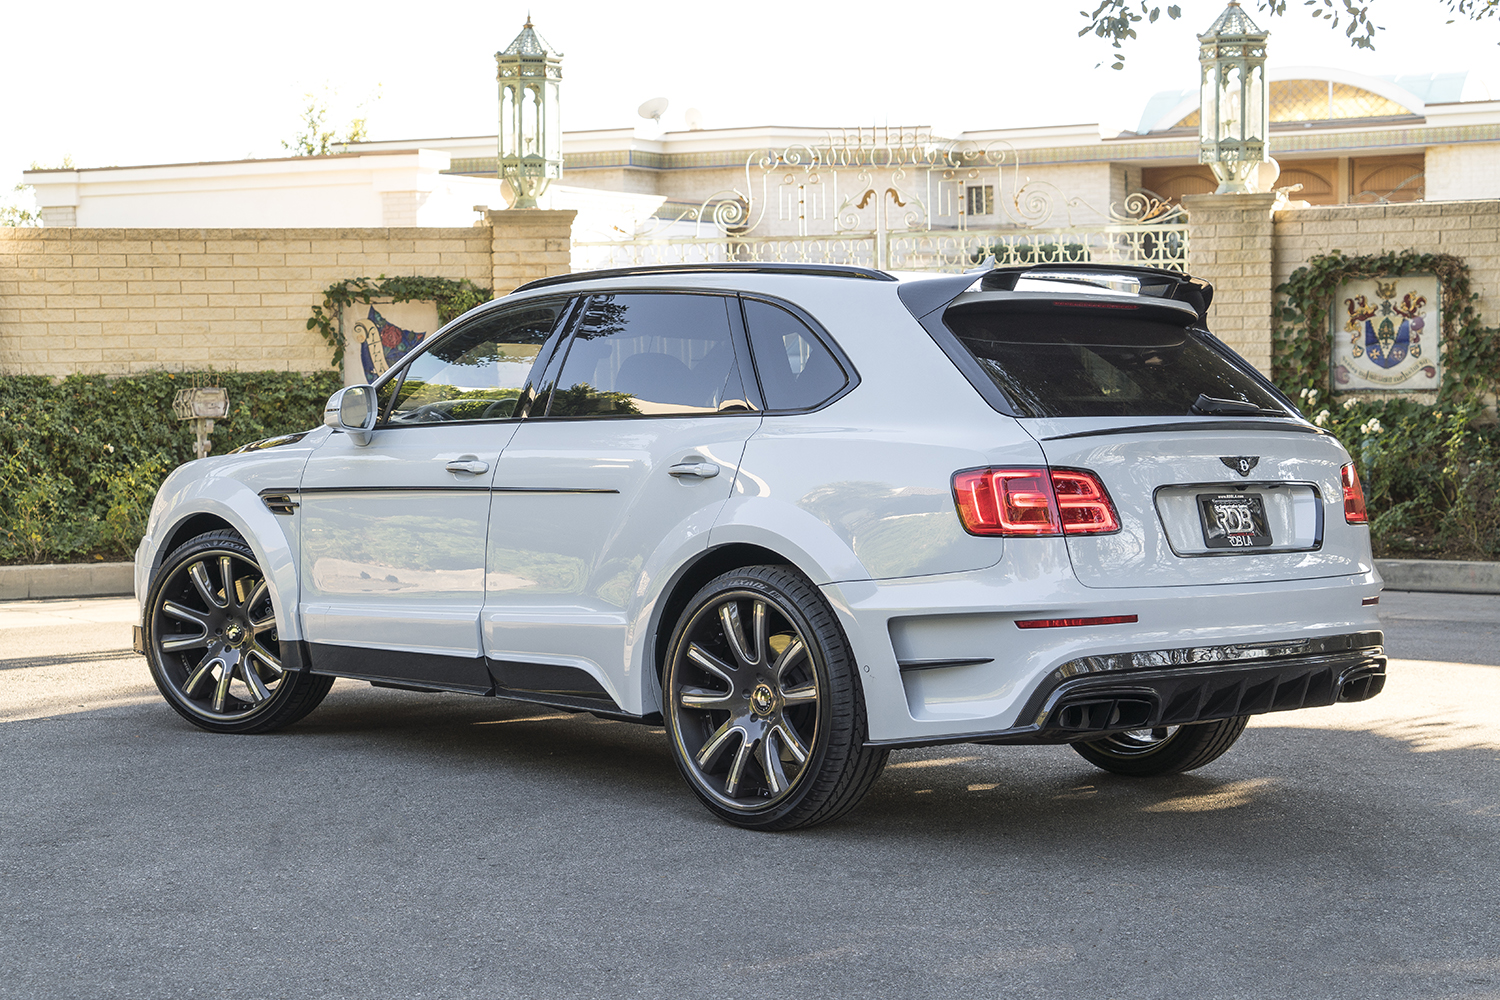 Bentley Bentayga Gets Mansory Body Kit and Forgiato Wheels ...